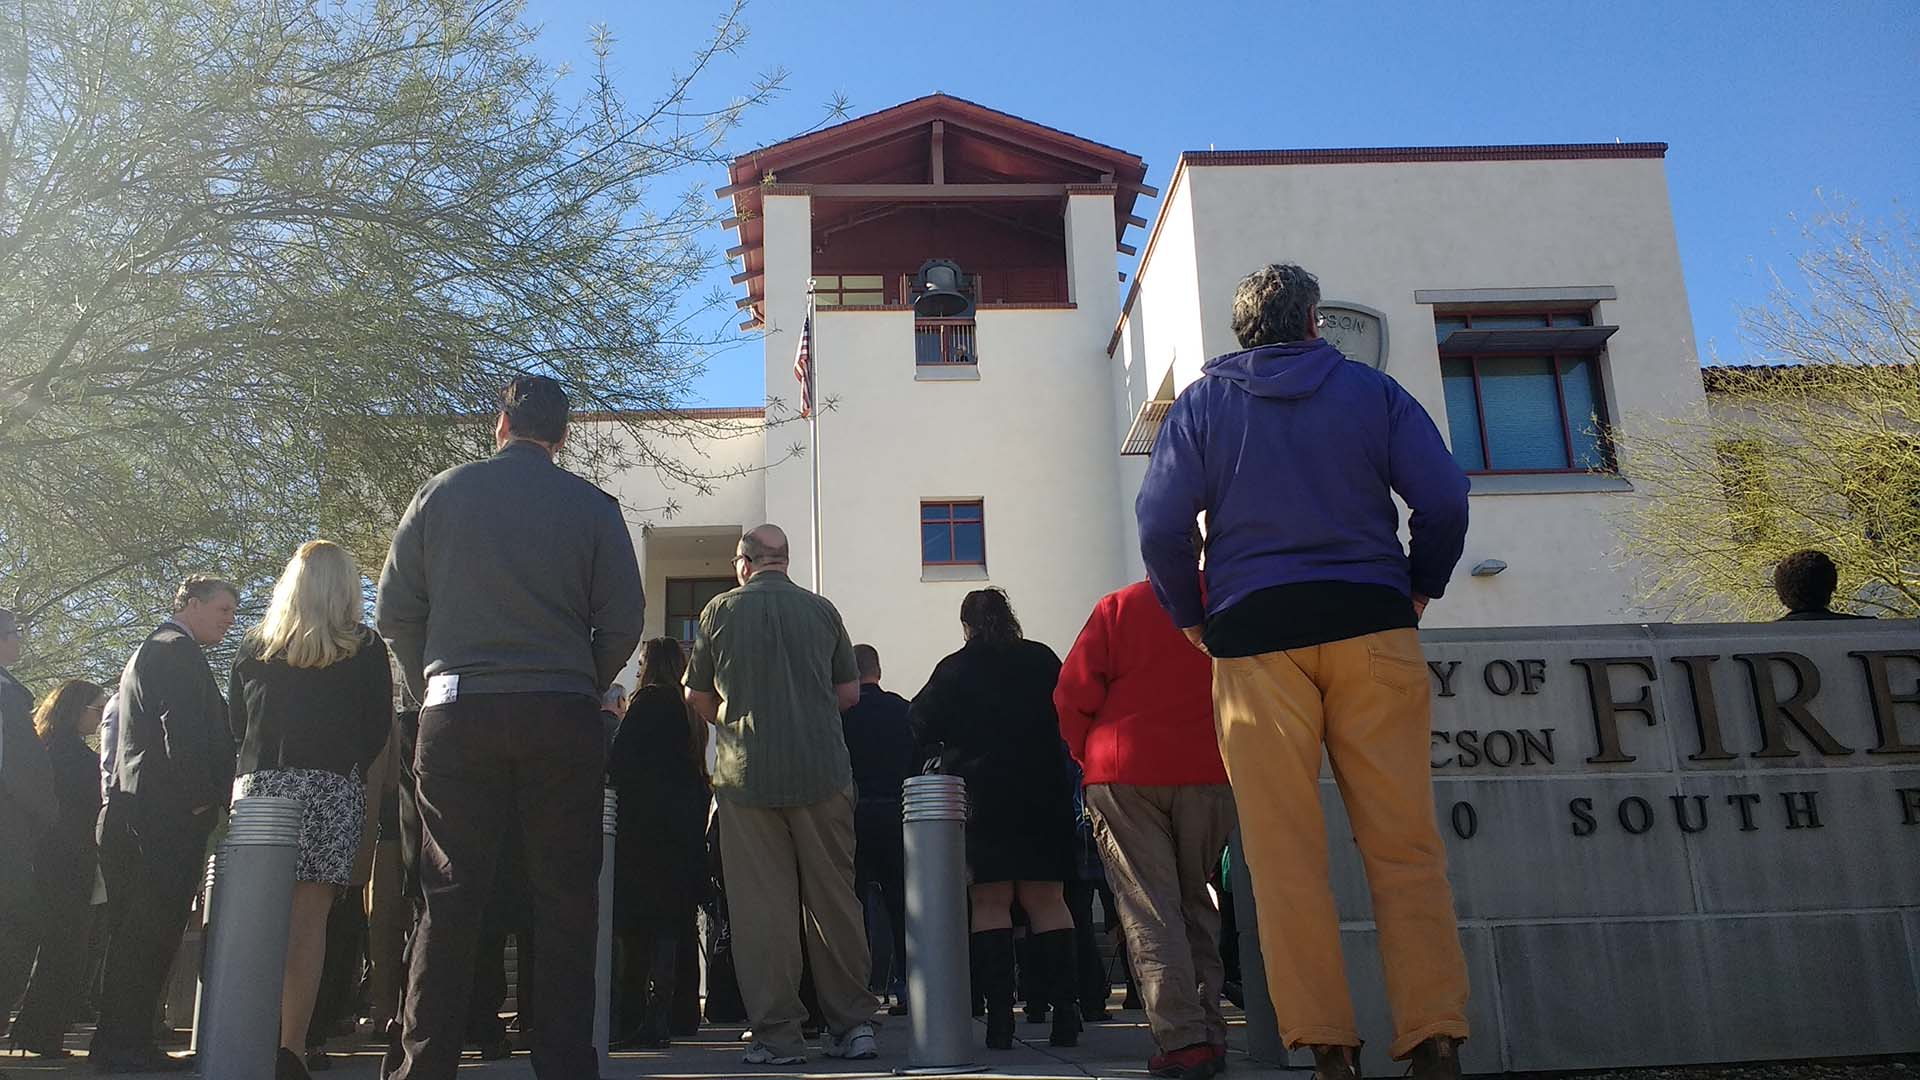 People gather outside Tucson Fire Central under the tower holding the historic fire department bell on January 8, 2019.   The city commemorated the eighth anniversary of the 2011 mass shooting that claimed six lives and left 13 people wounded.